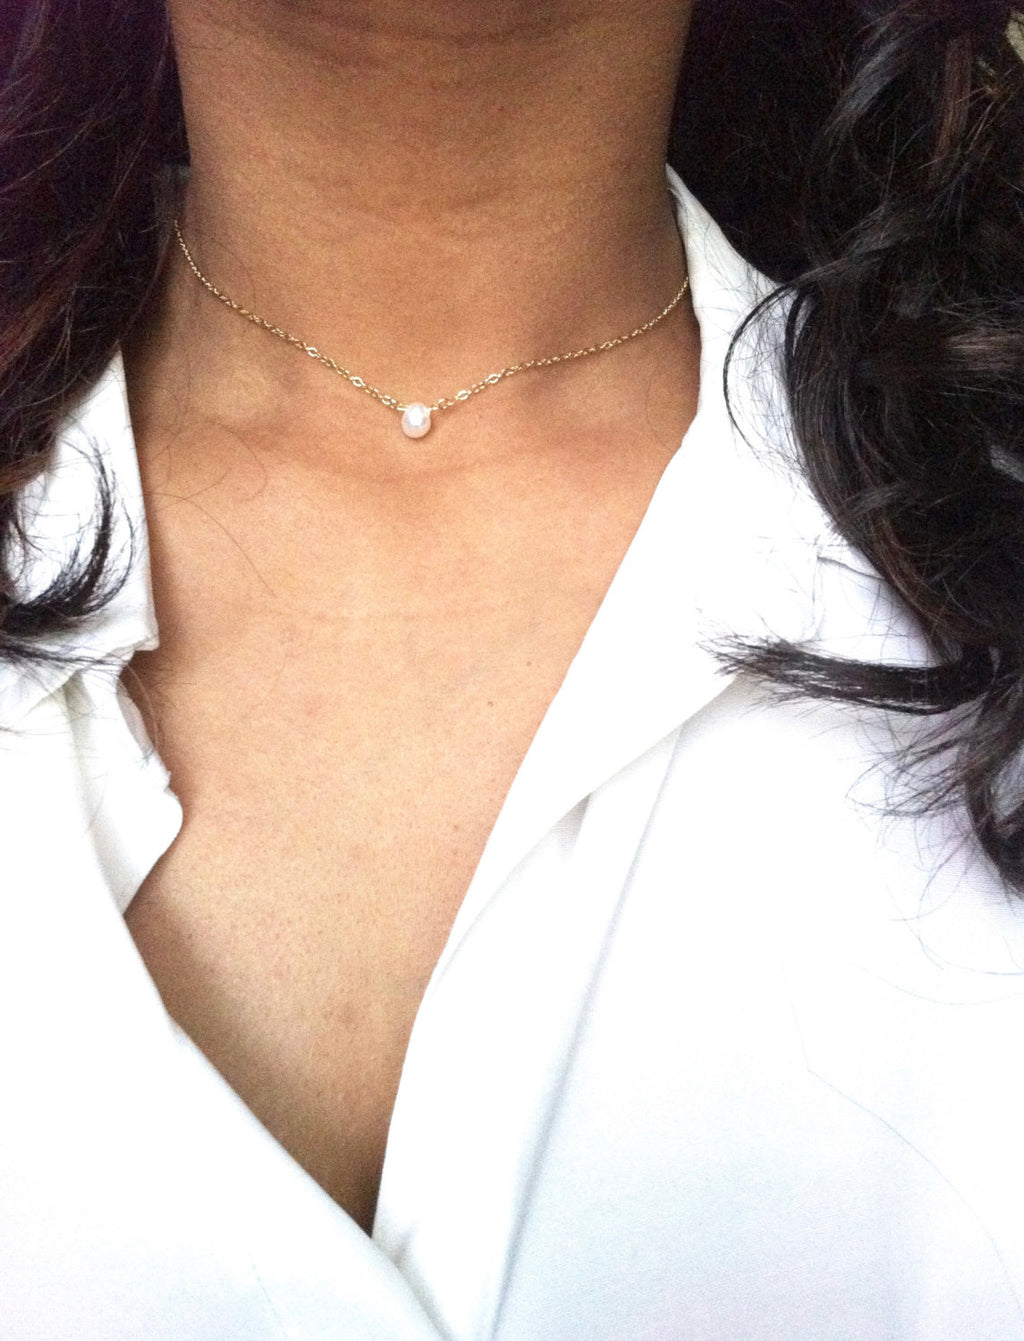 Small Delicate Single Pearl Choker Necklace | IB Jewelry